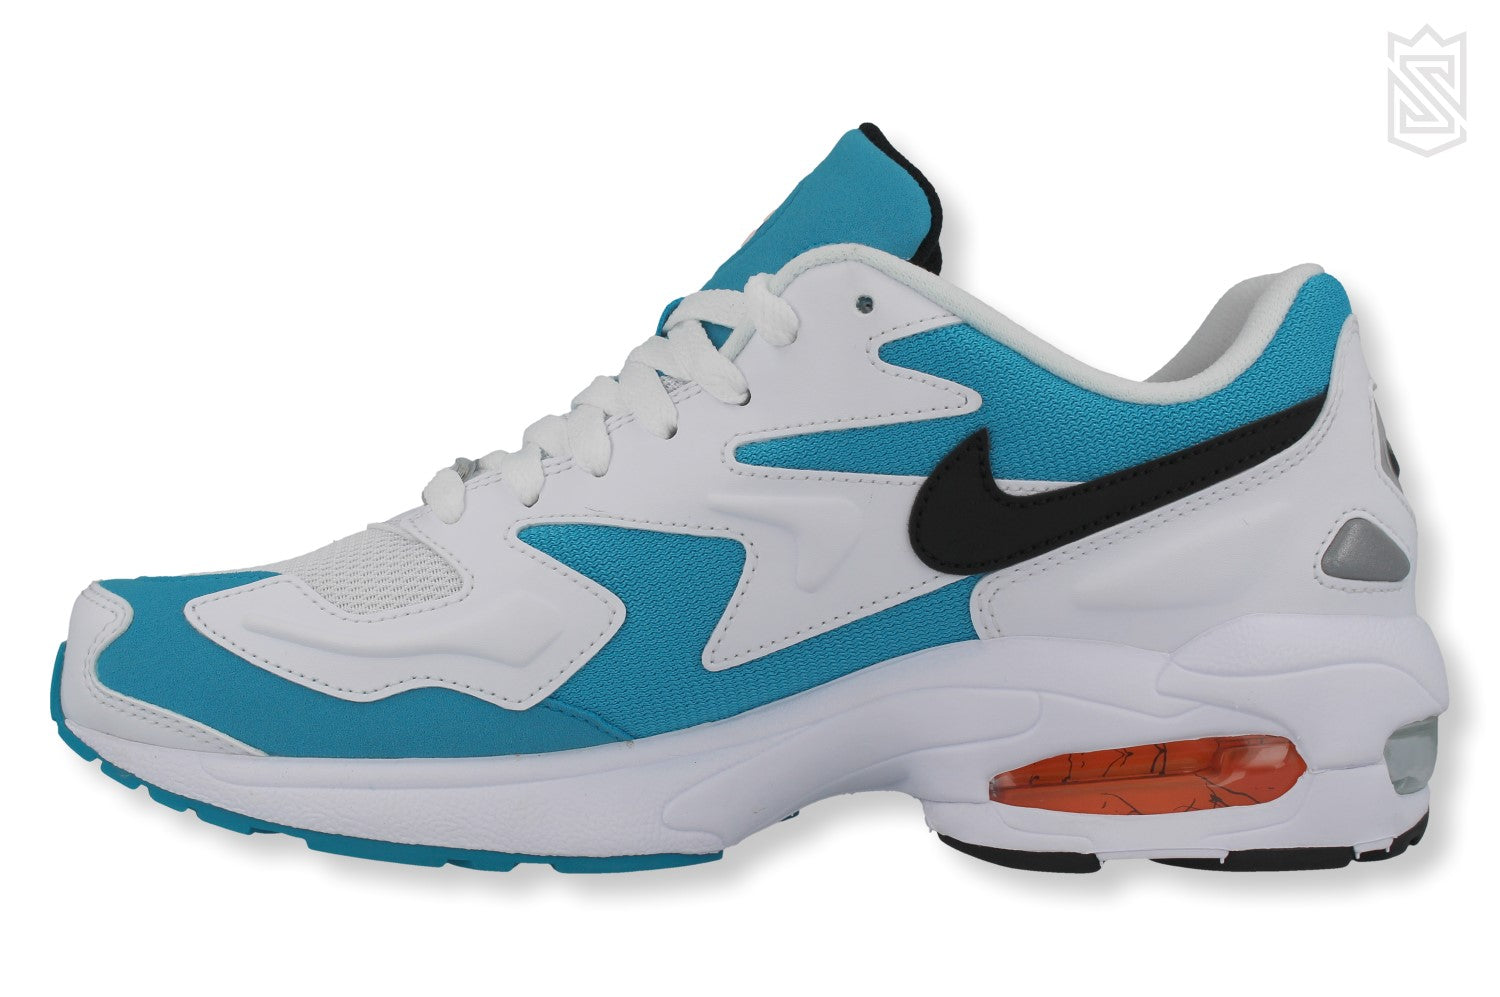 finest selection 68b5a 32219 Air Max 2 Light OG - Schrittmacher Shop